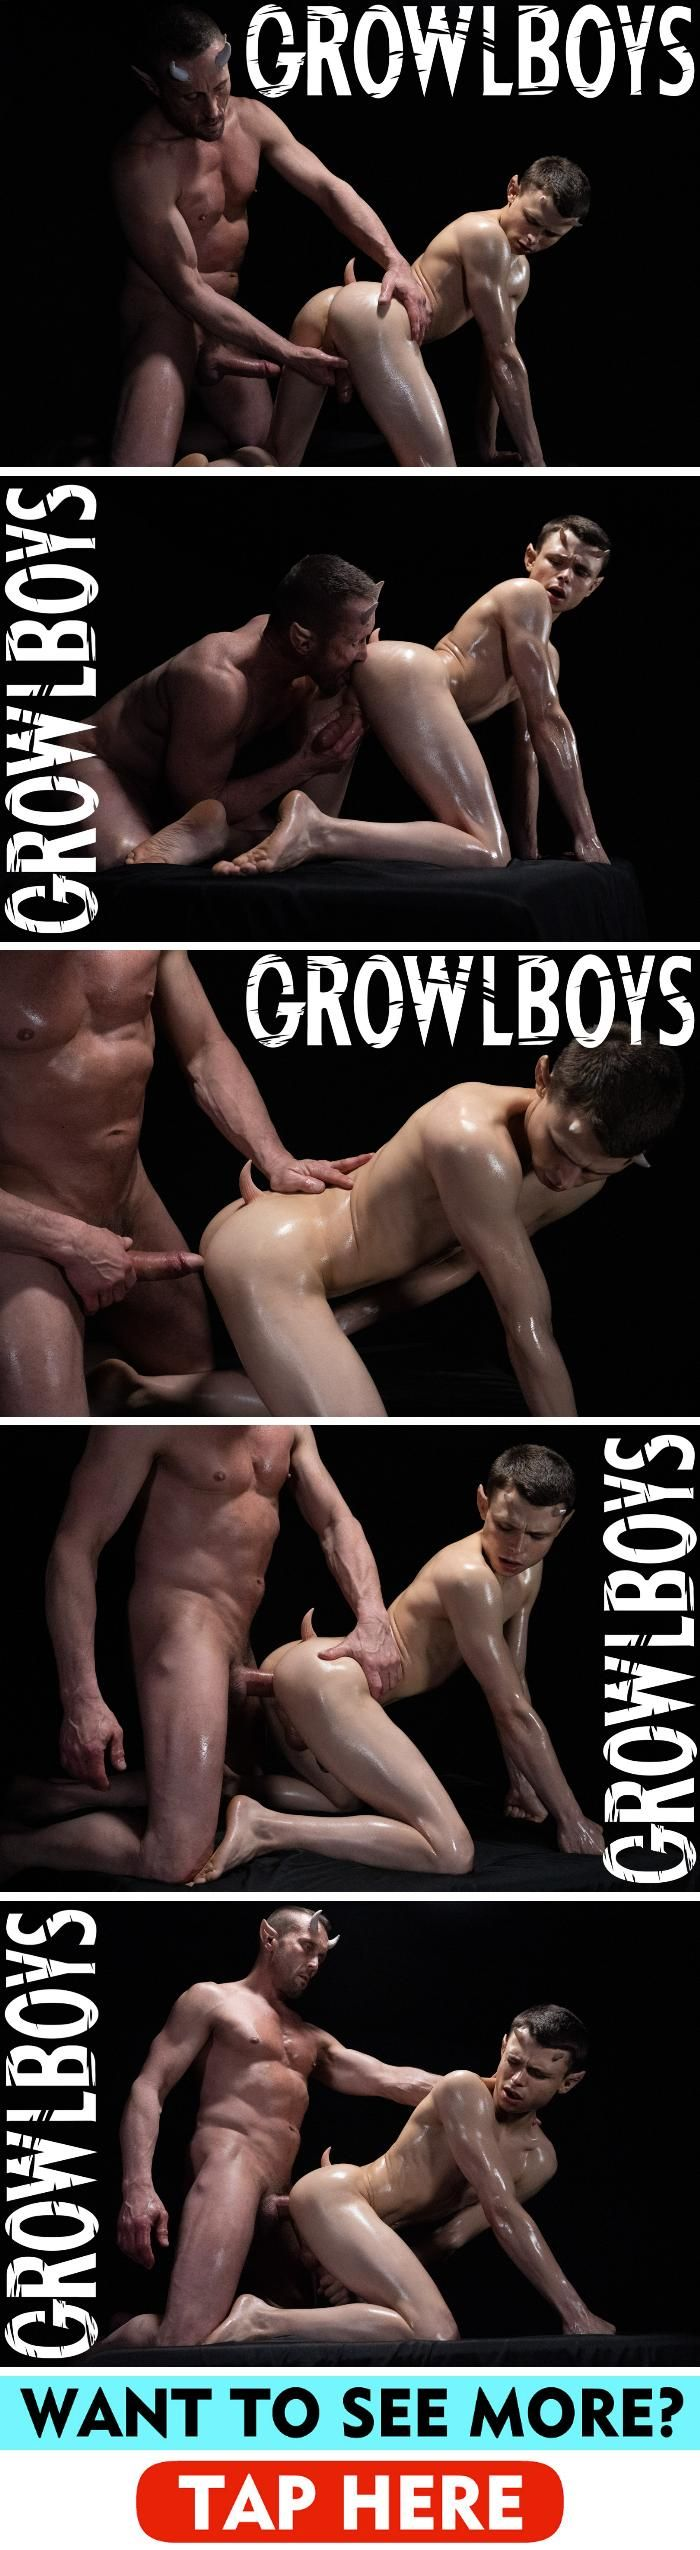 Growlboys: Austin L Young - Chapter 5: The Faunlet 1